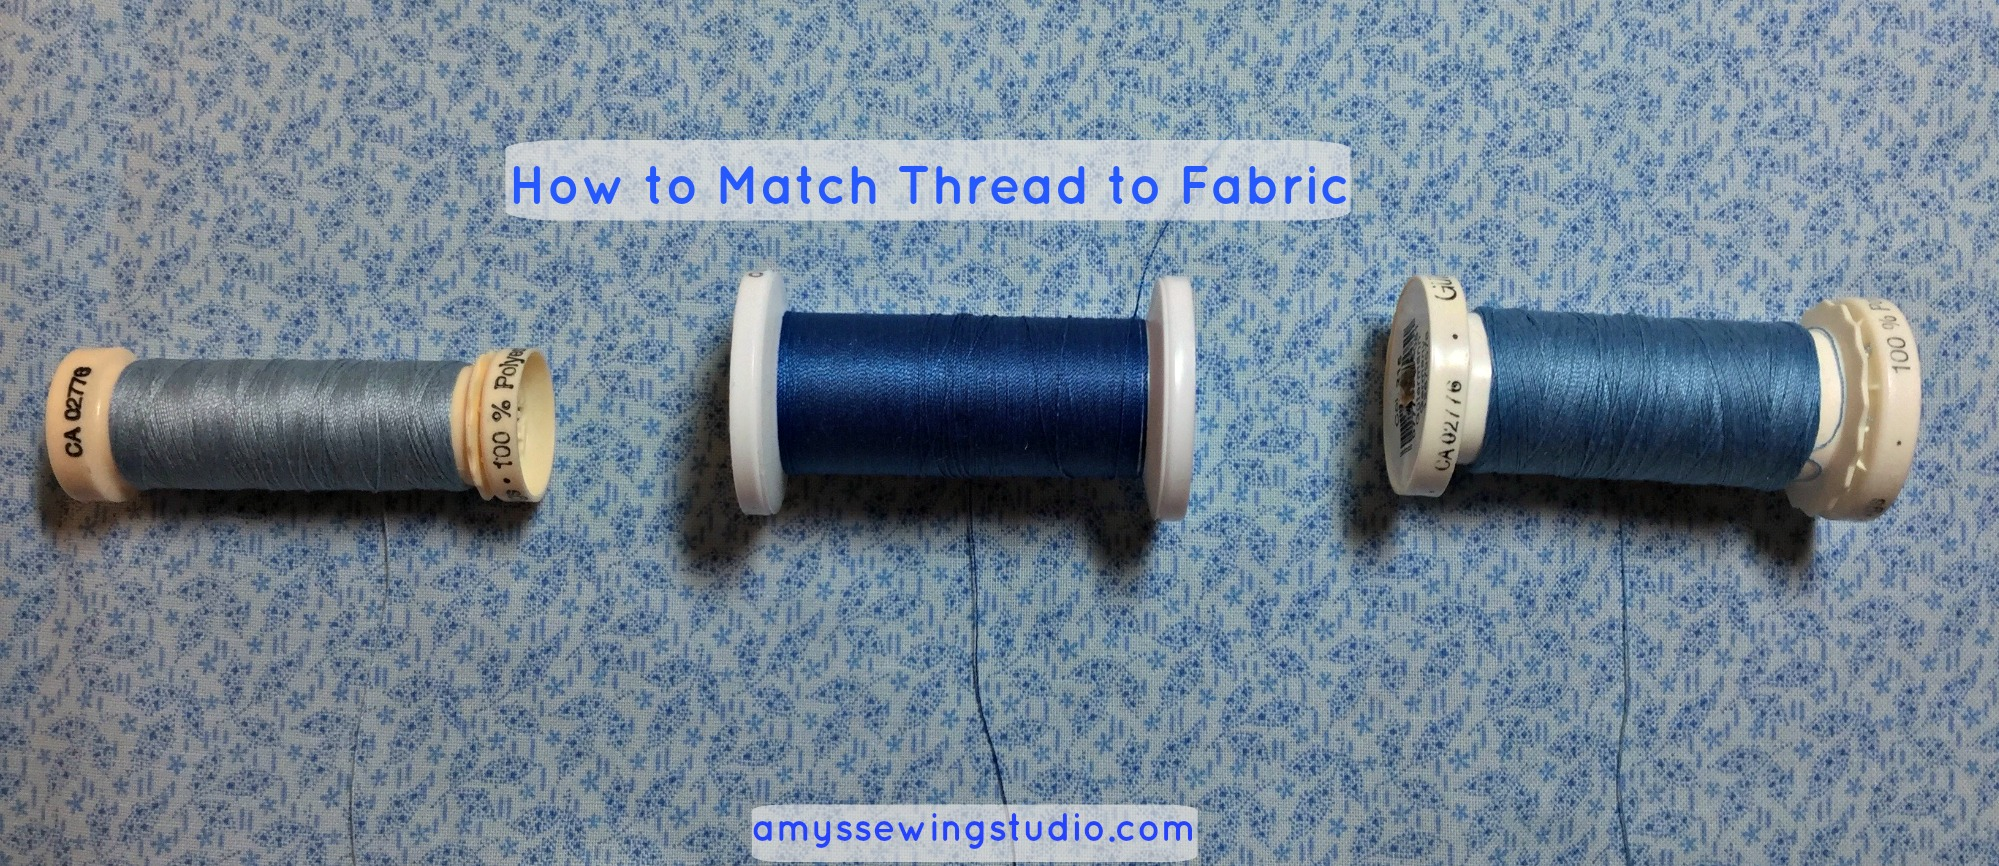 How to match thread to fabric for sewing basic hand sewing stitches.